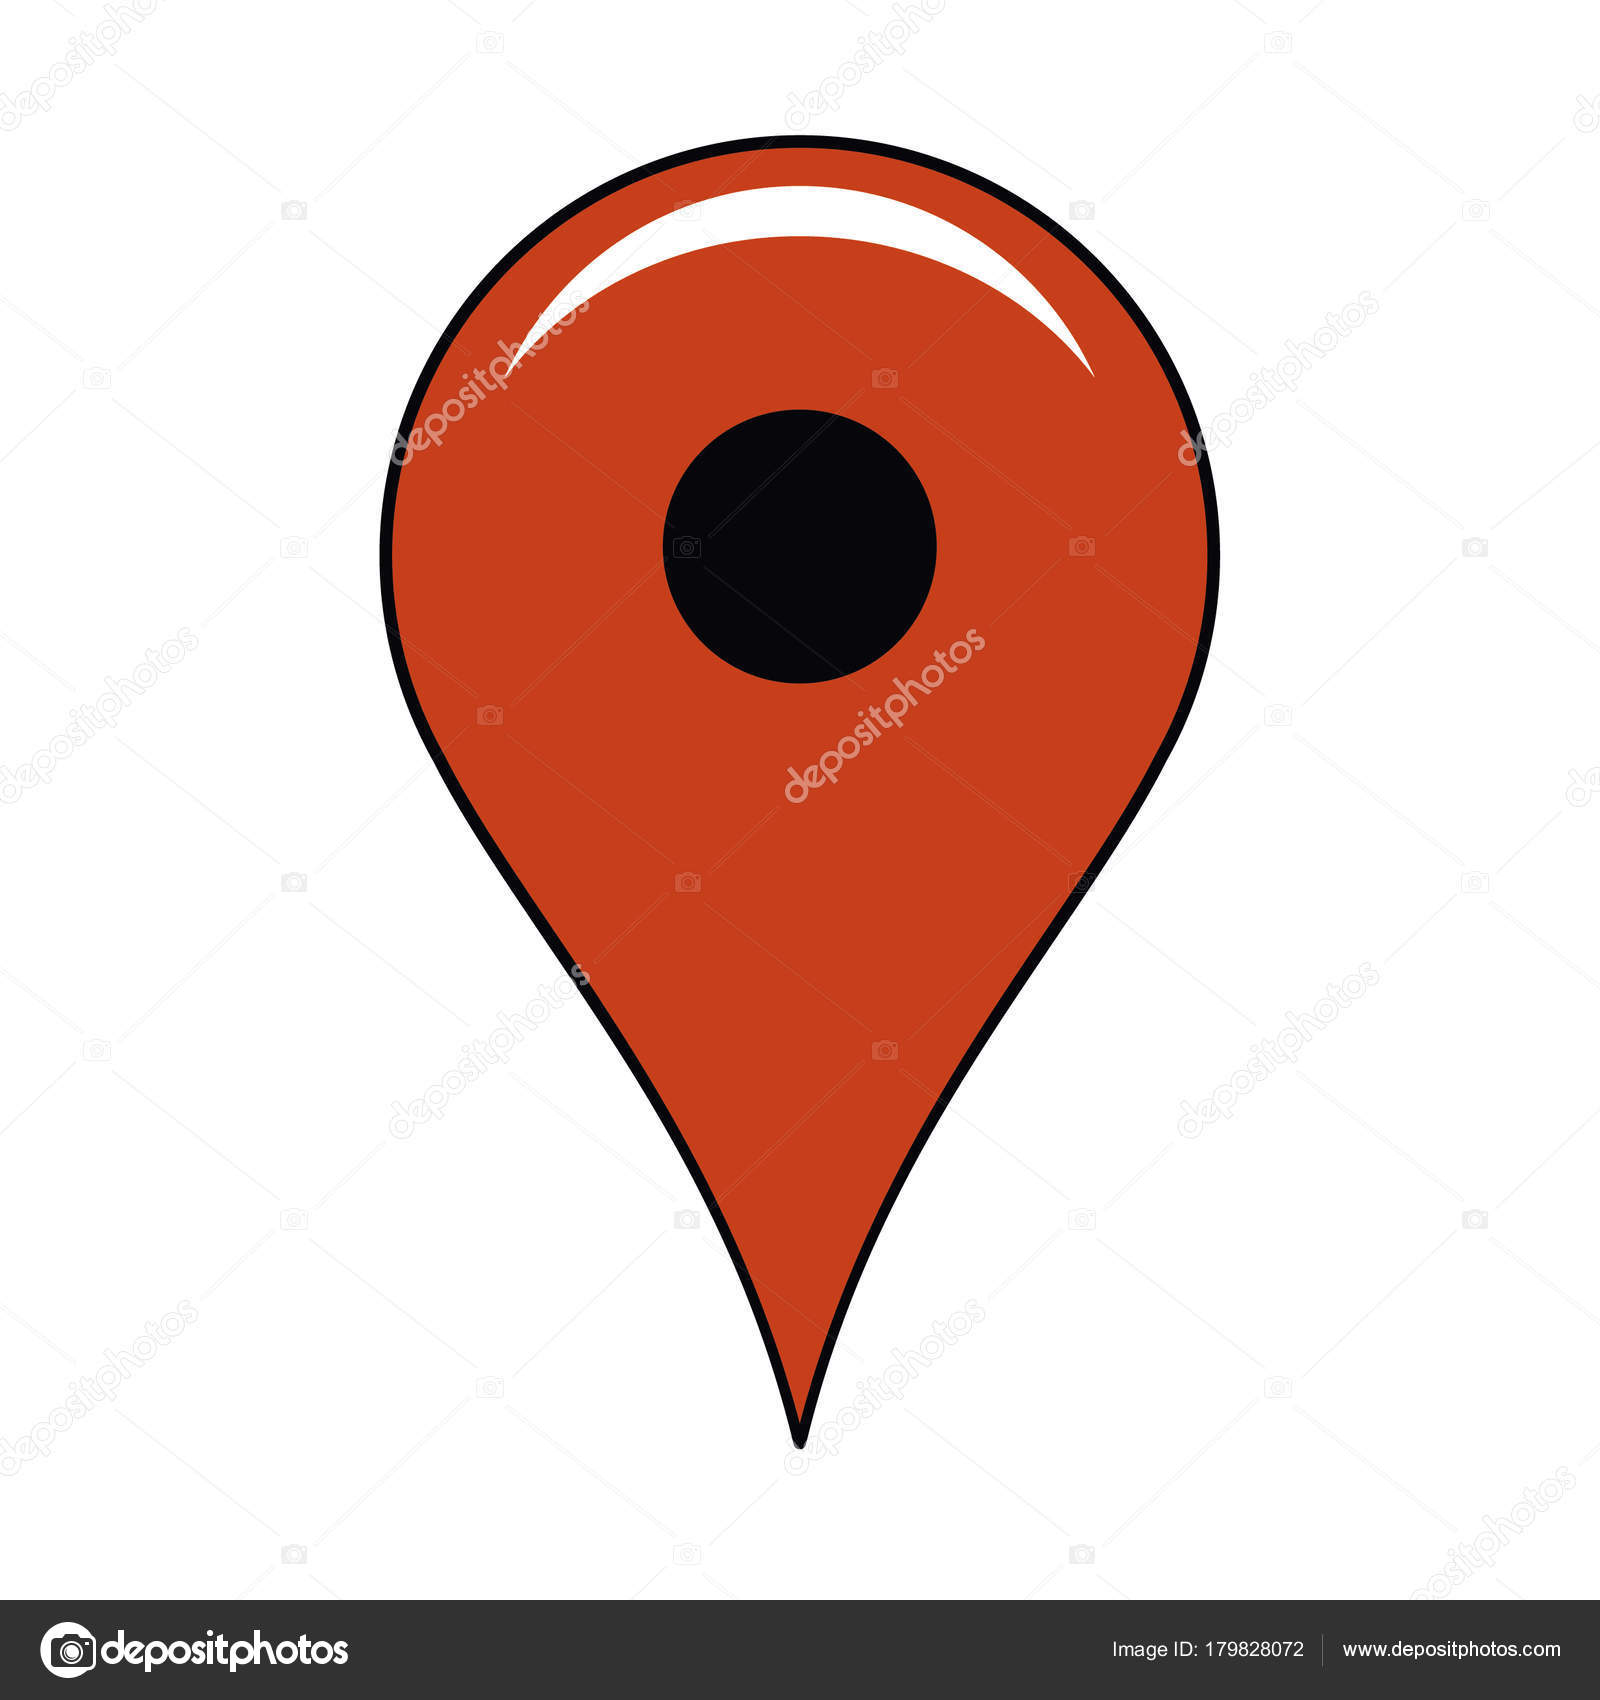 Location Pin Icon Simple Red Location Pin Vector Icon White